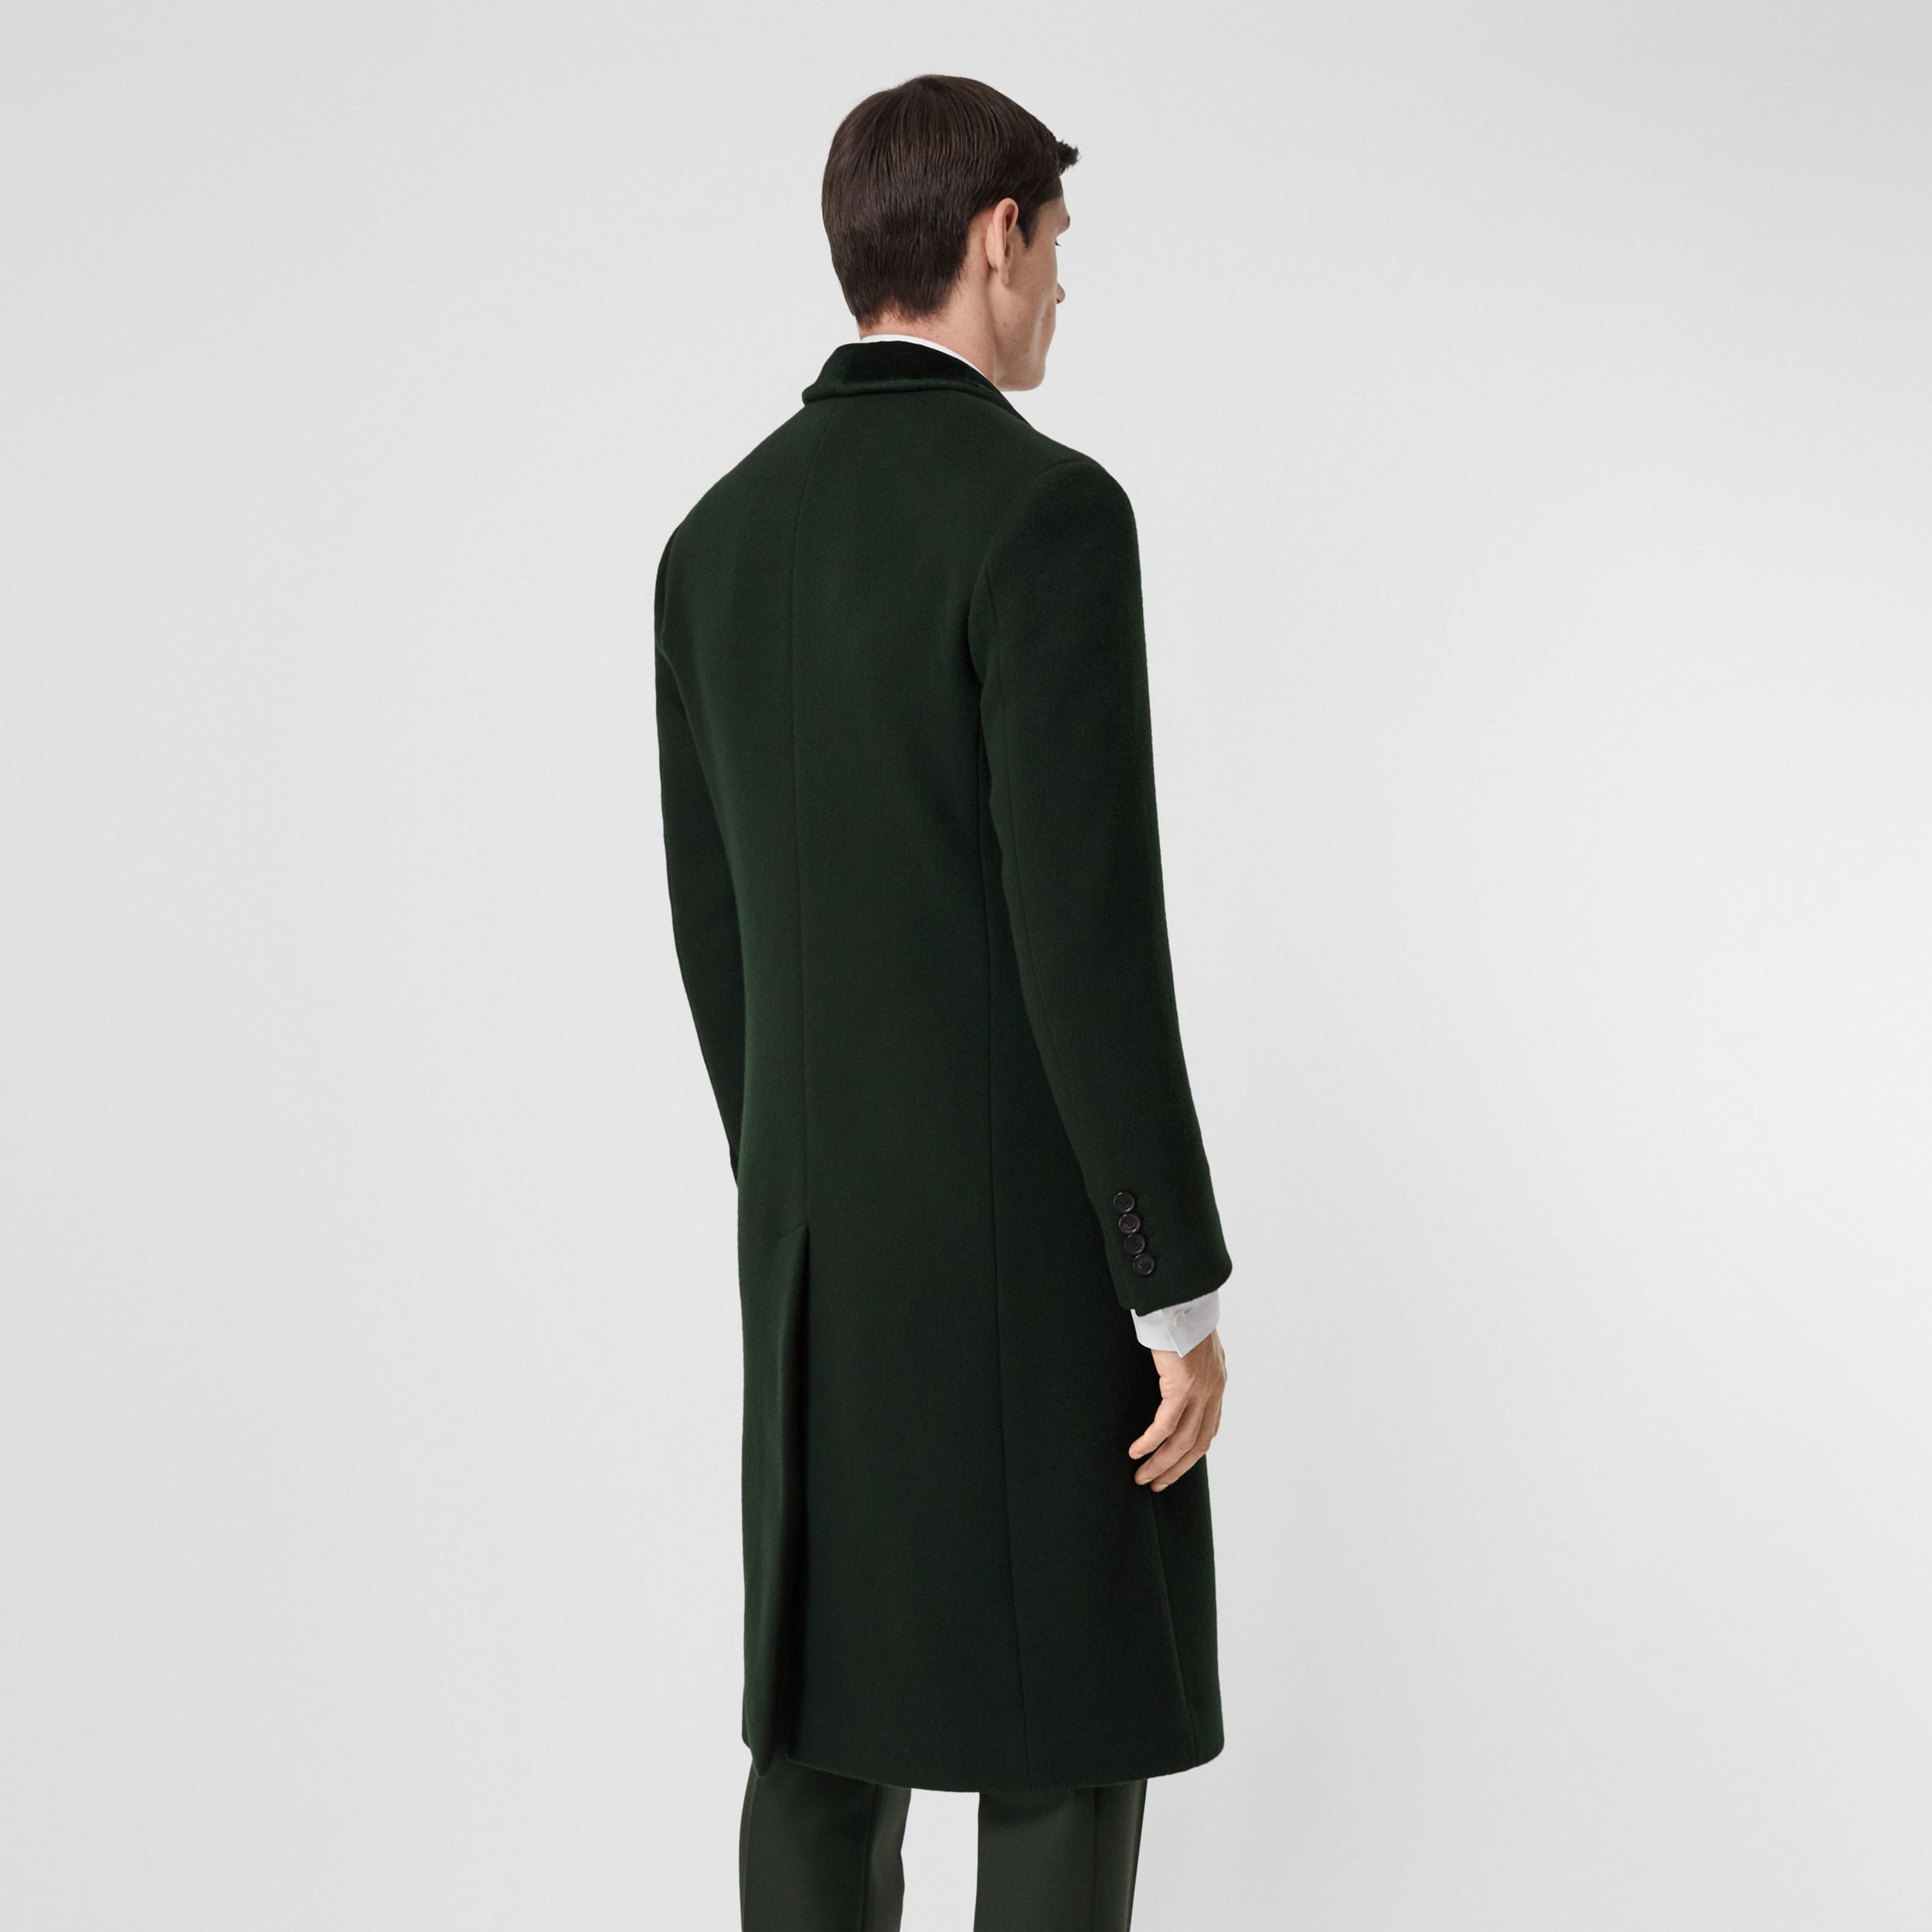 Velvet Trim Wool Cashmere Tailored Coat in Dark Pine Green - Men | Burberry - 3